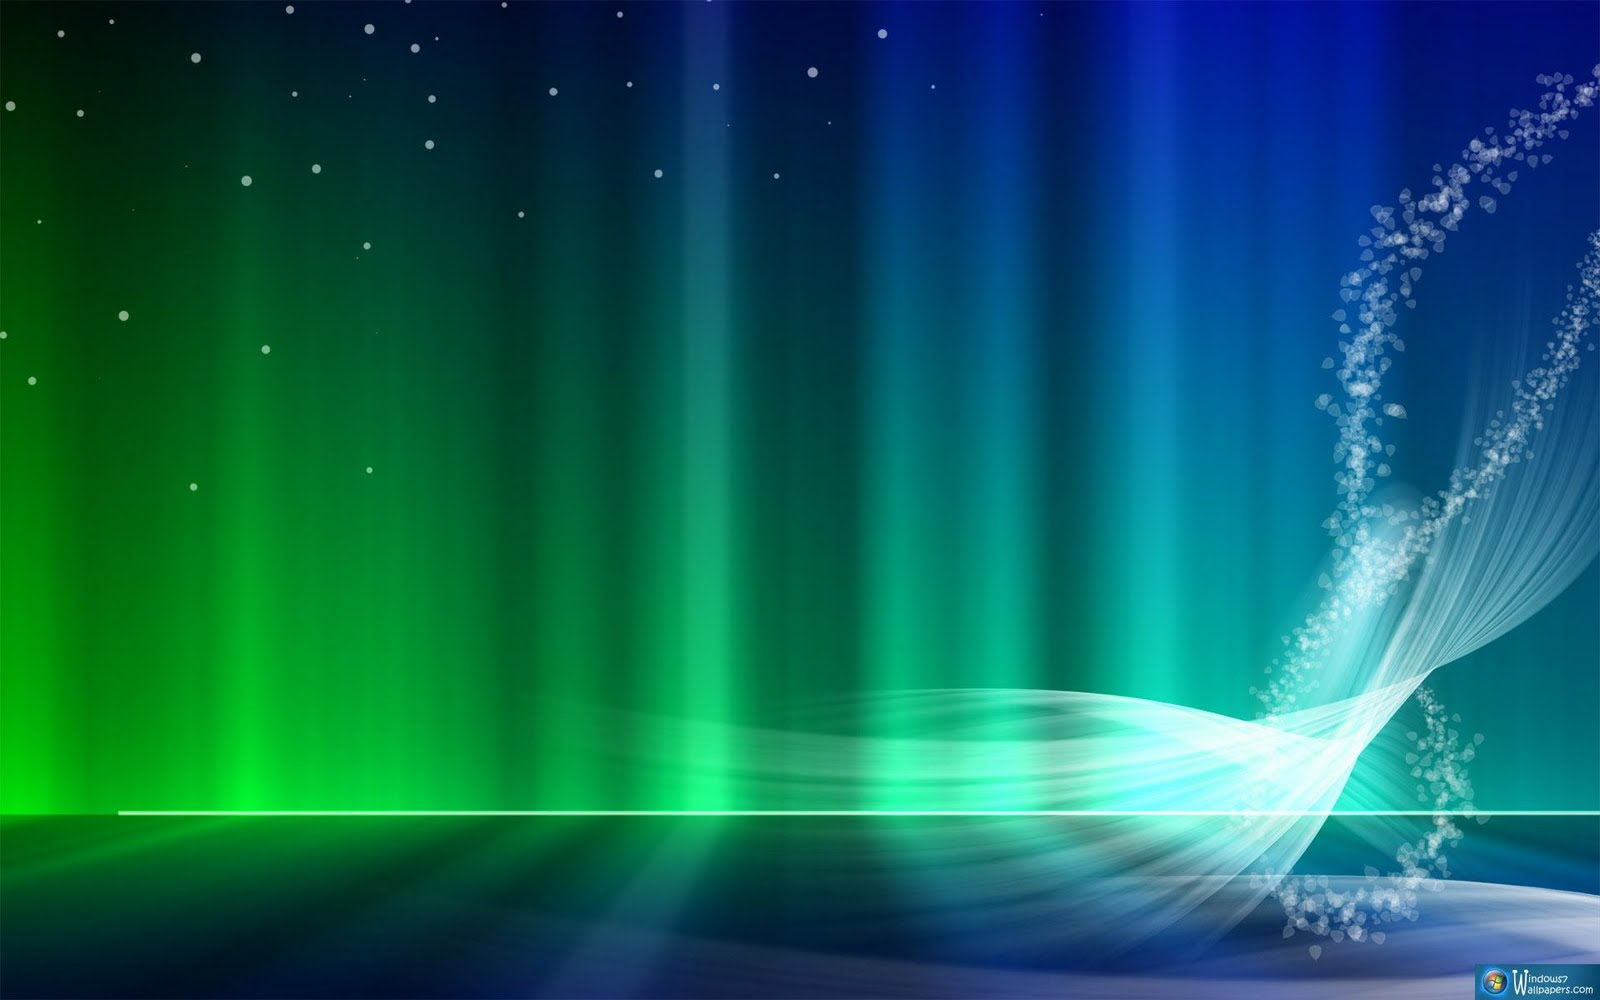 Full wallpaper windows seven background for Window background